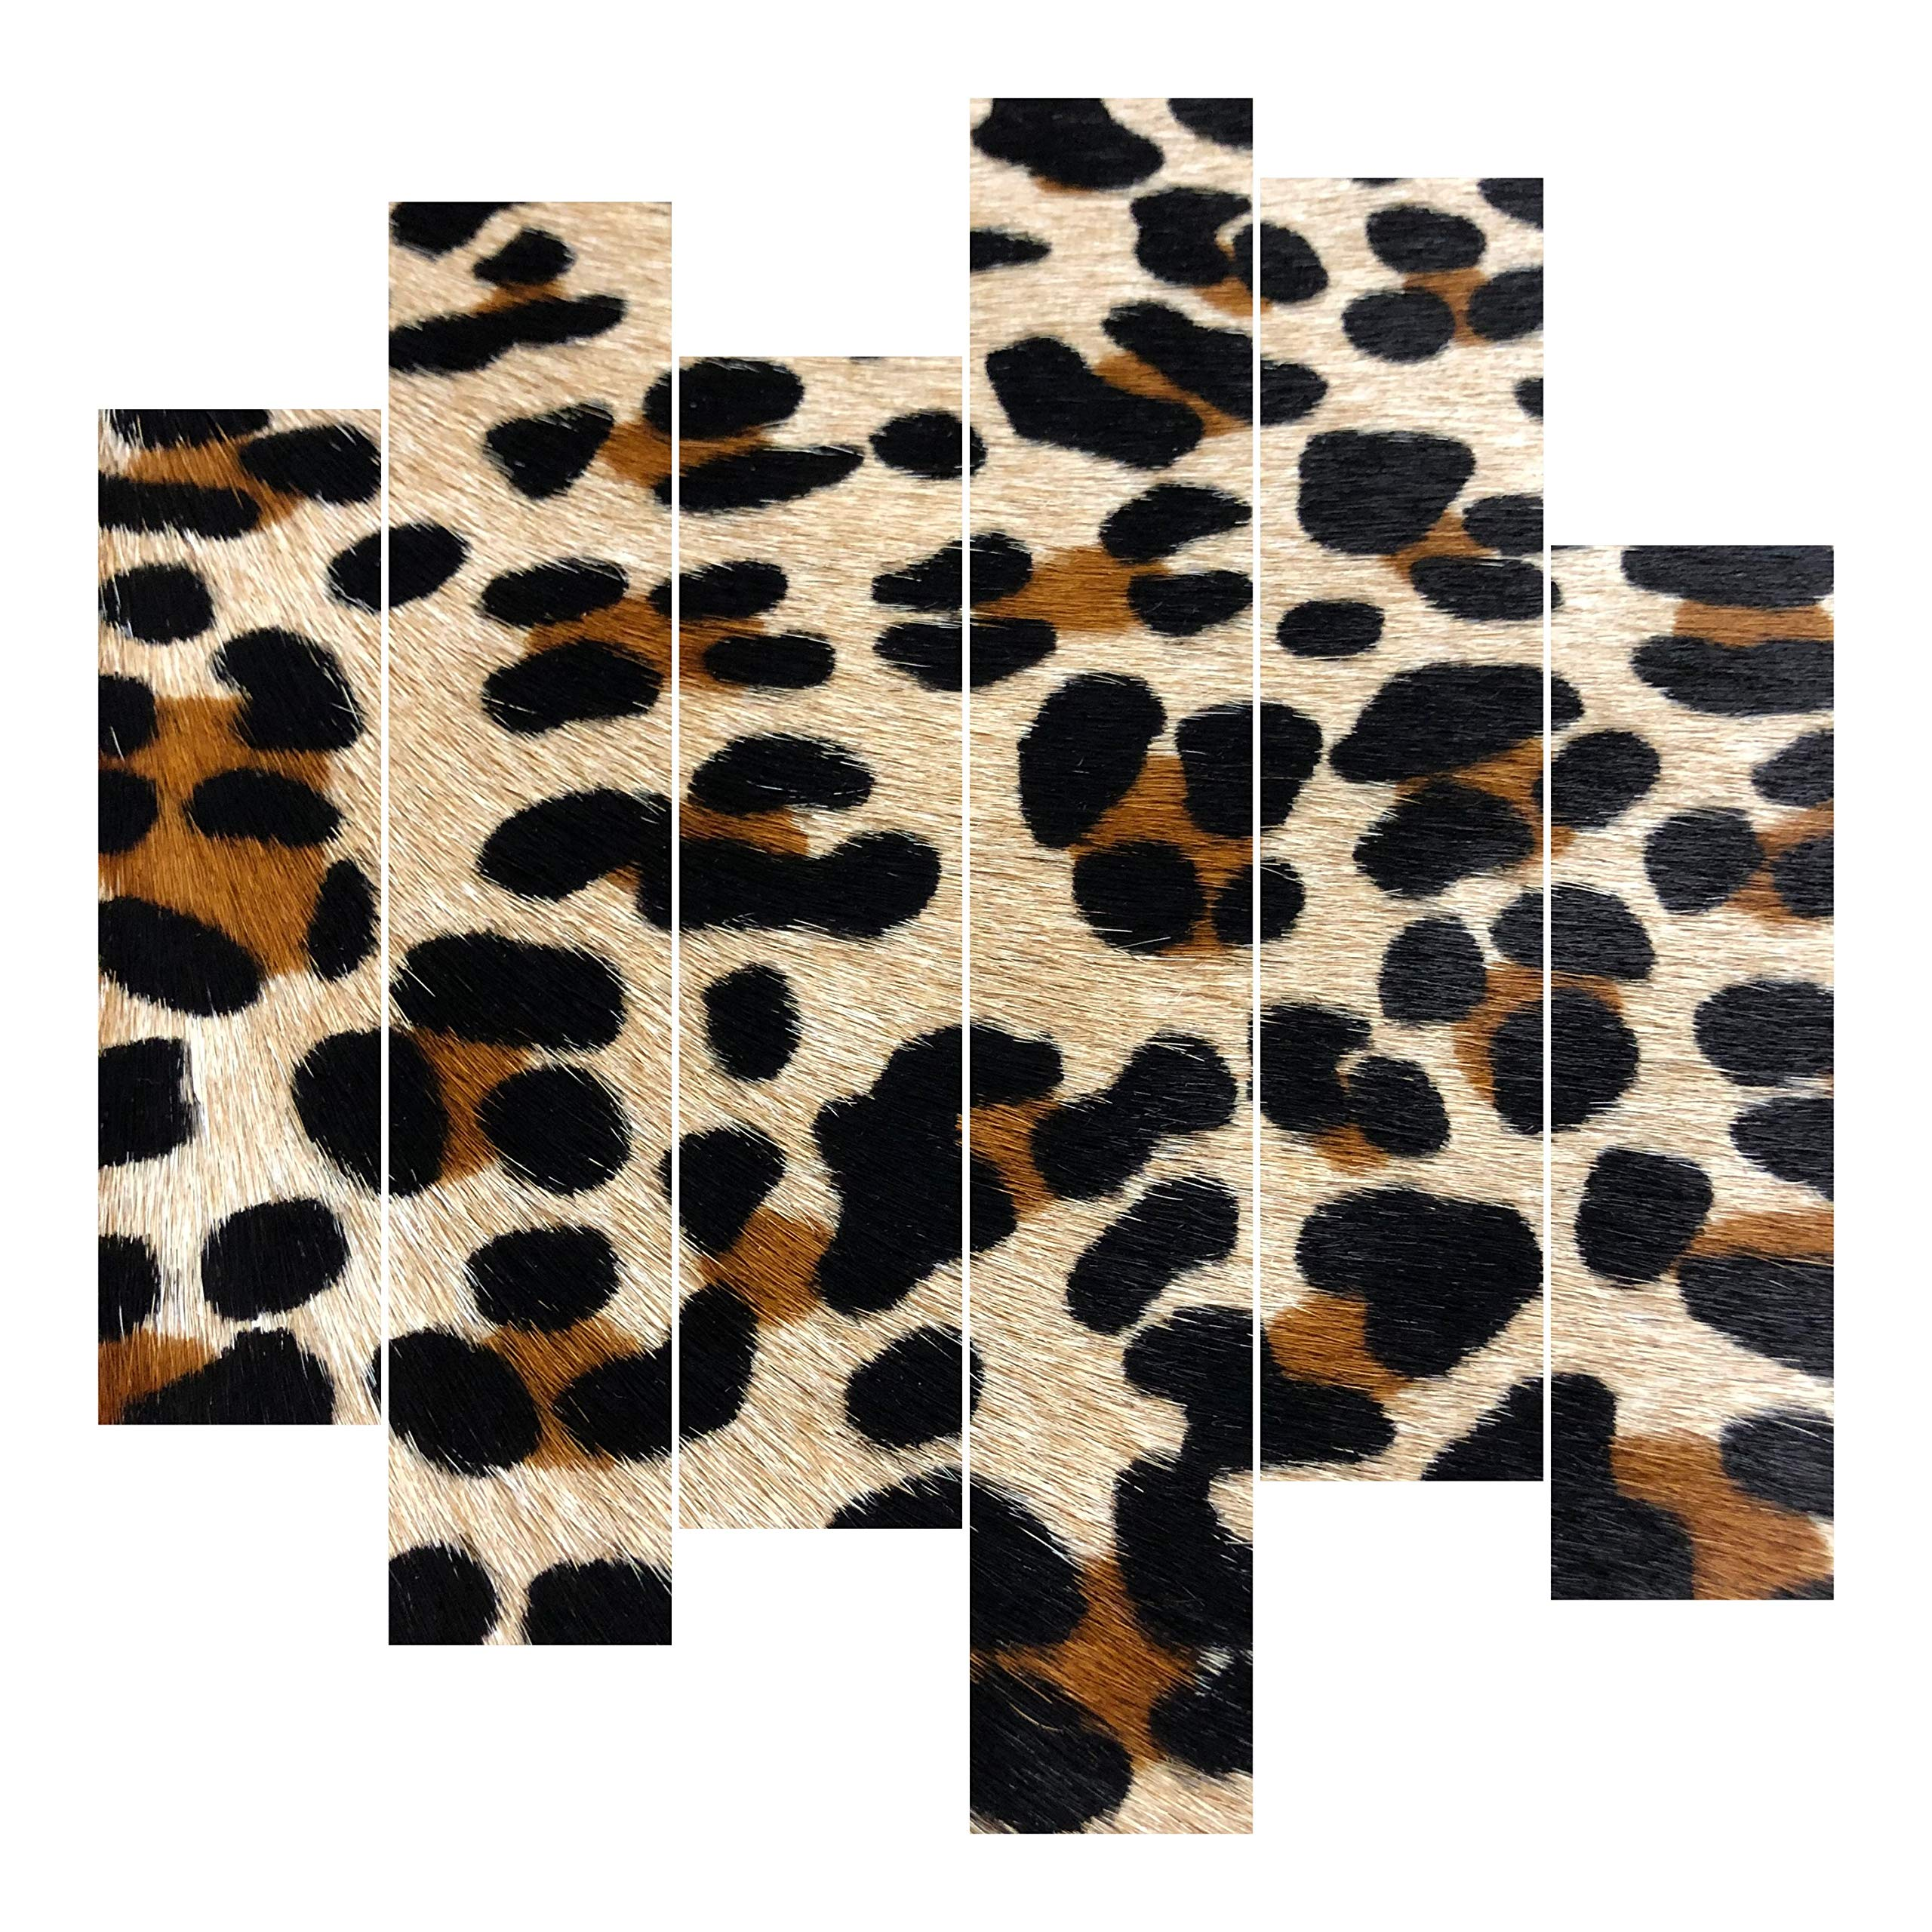 Leopard Printed Cowhide Leather, Custom Cuts, Hair On Hide, Custom Cuts for Bags, Wallets, Earrings, Upholstery (12x24 inch)